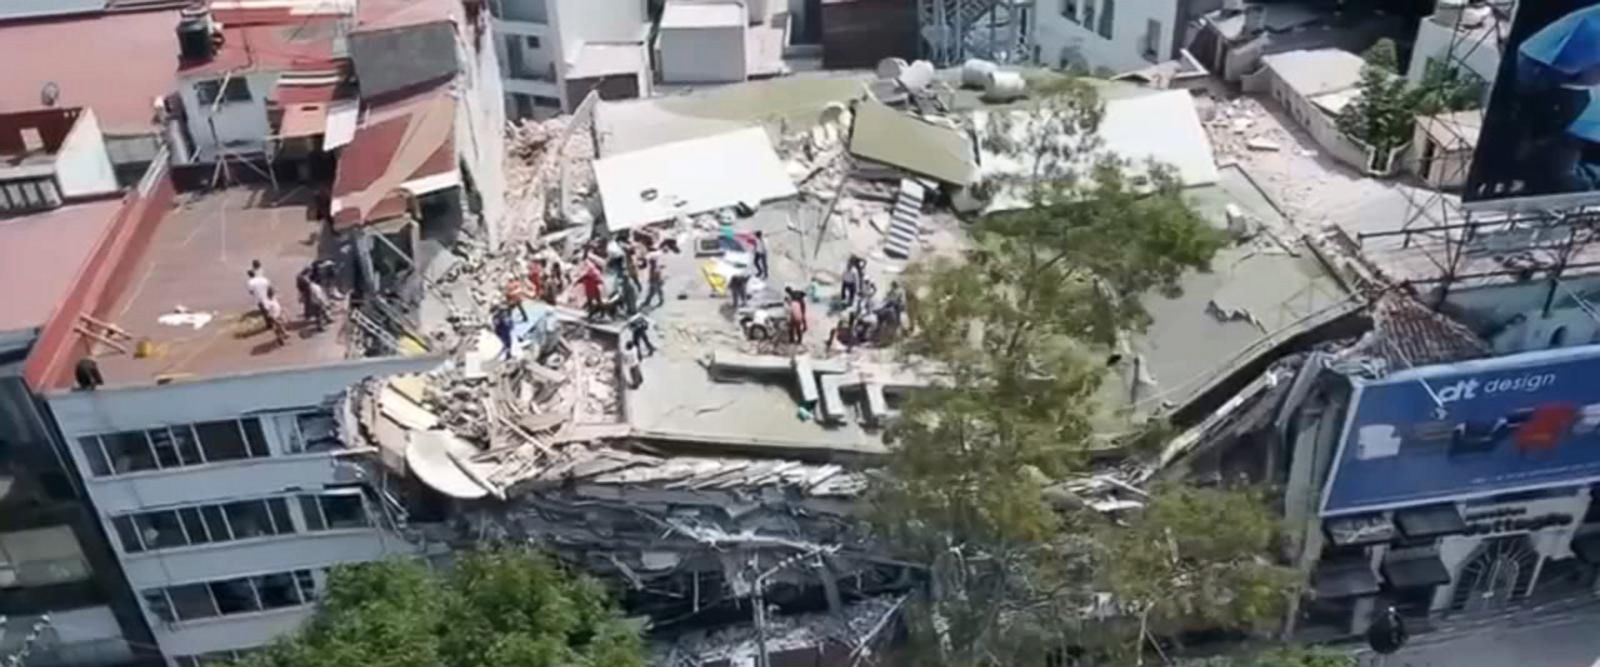 The earthquake caused extensive damage to Mexico City.